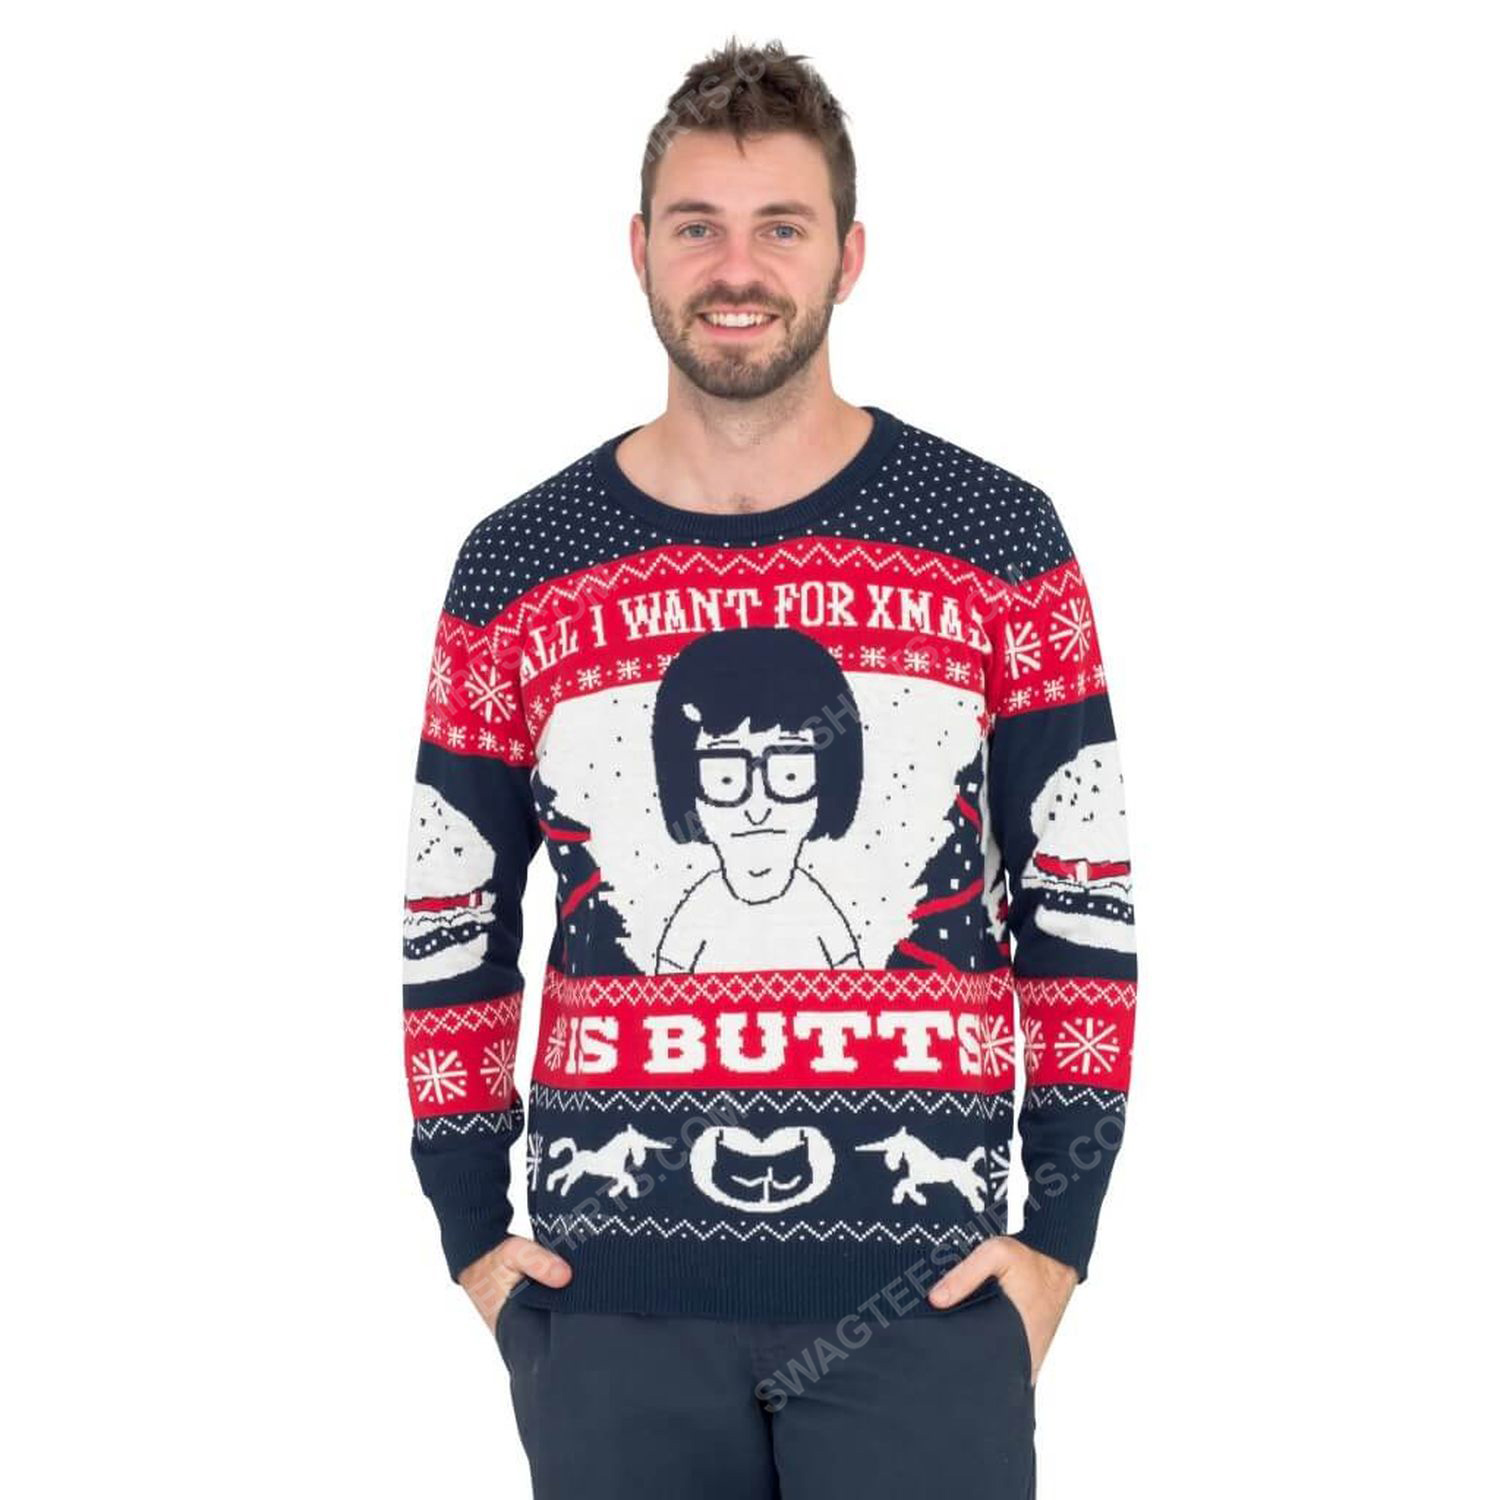 All i want for xmas is butts tina from bob's burgers ugly christmas sweater 2